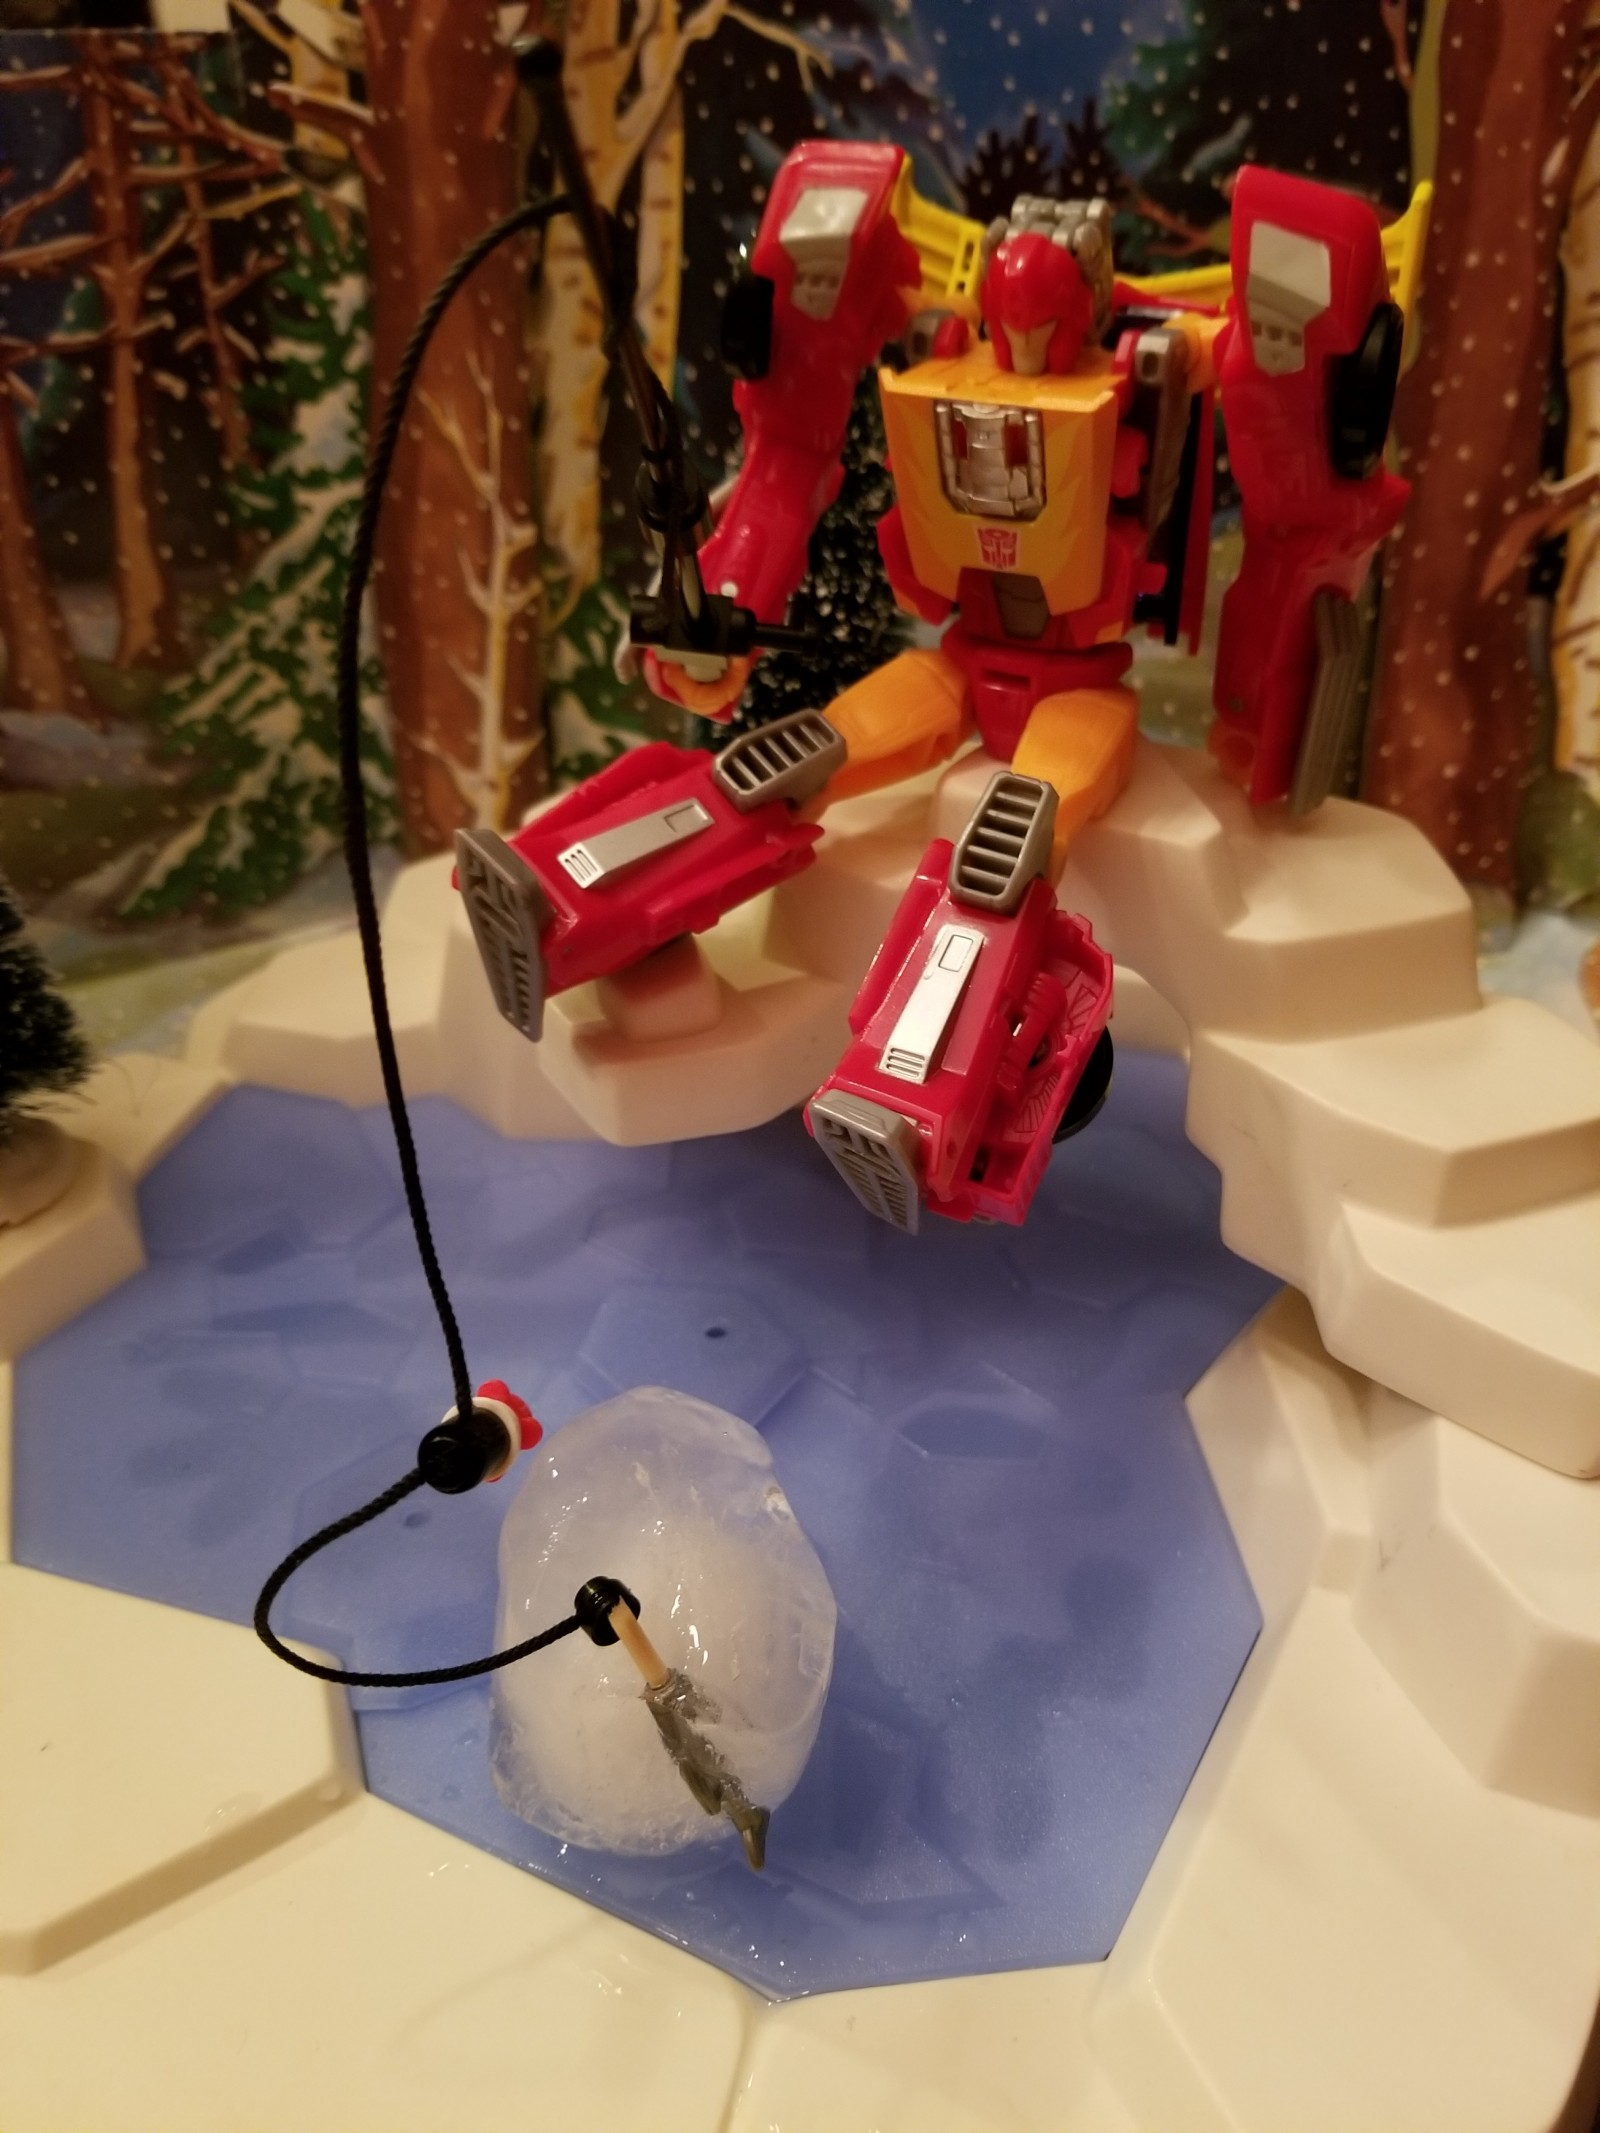 Transformers News: Re: Transformersmas 2017: A 25 Day Holiday Photo Challenge